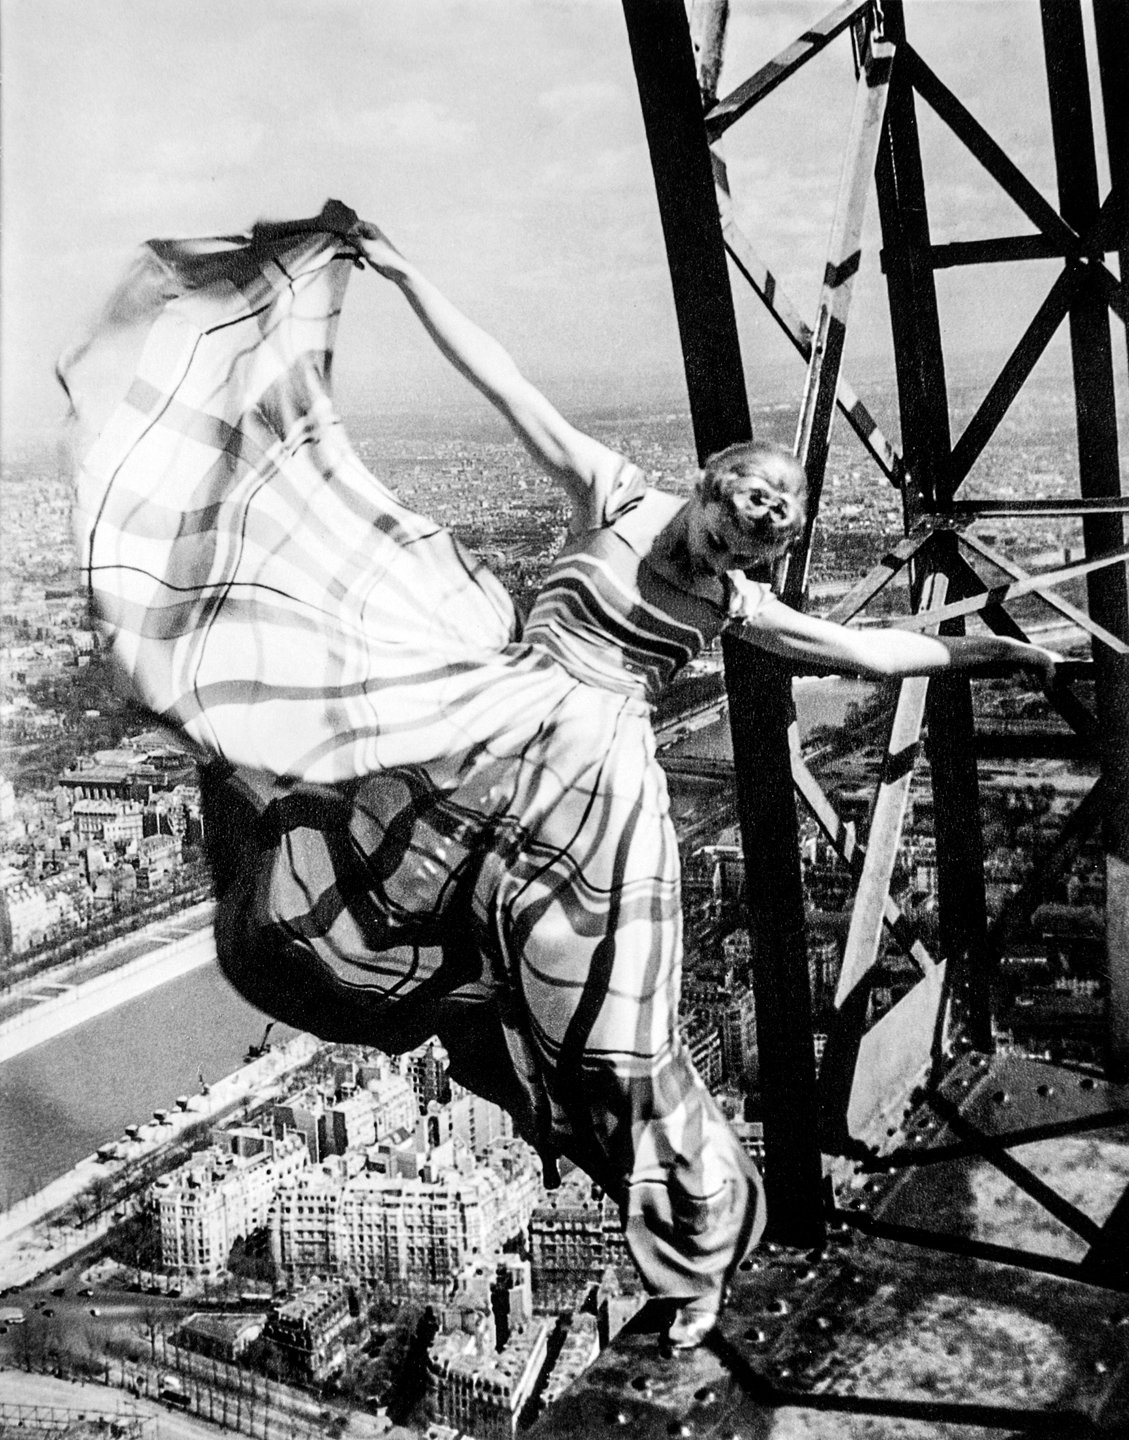 Lisa Fonssagrives on the Eiffel Tower, Paris 1939. Photo by Erwin Blumenfeld.